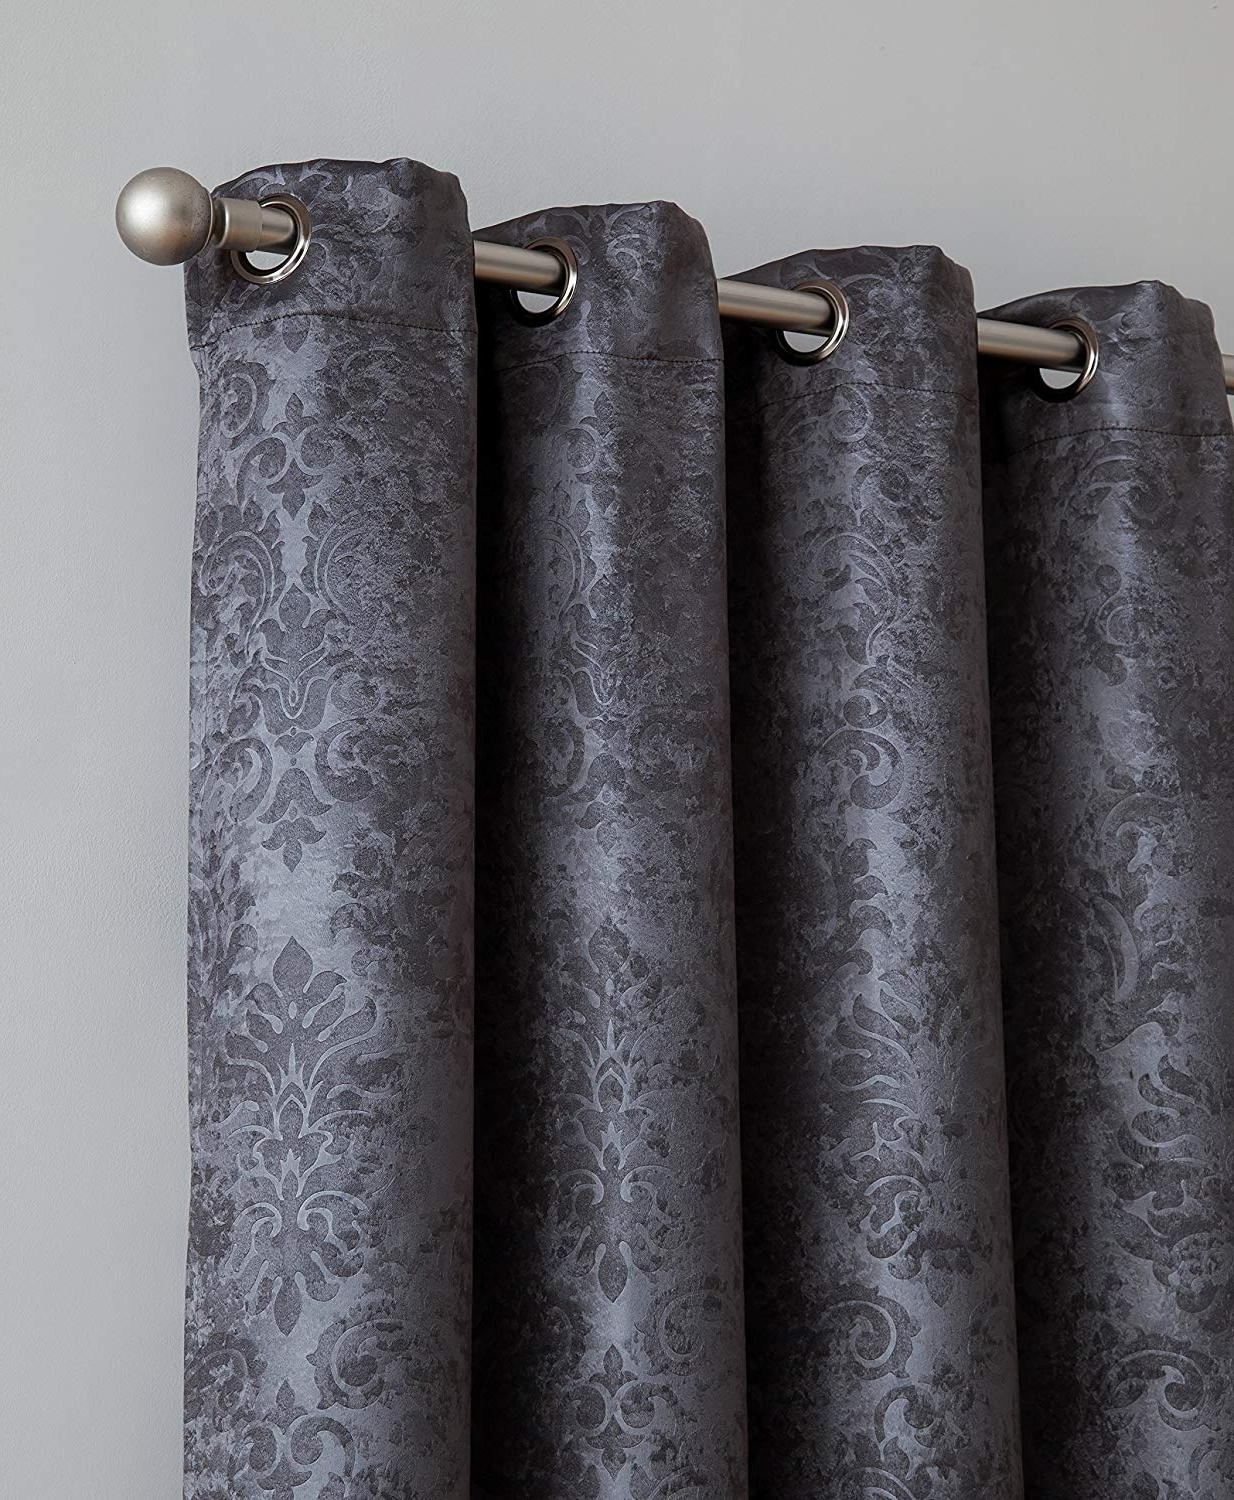 [%evelyn – Embossed Thermal Weaved Blackout Curtain With 8 Grommets – Room Darkening & Noise Reduction Fabric – Blocks Up To 97% Of Sunlight – Premium Regarding Favorite Embossed Thermal Weaved Blackout Grommet Drapery Curtains|embossed Thermal Weaved Blackout Grommet Drapery Curtains With Trendy Evelyn – Embossed Thermal Weaved Blackout Curtain With 8 Grommets – Room Darkening & Noise Reduction Fabric – Blocks Up To 97% Of Sunlight – Premium|most Popular Embossed Thermal Weaved Blackout Grommet Drapery Curtains For Evelyn – Embossed Thermal Weaved Blackout Curtain With 8 Grommets – Room Darkening & Noise Reduction Fabric – Blocks Up To 97% Of Sunlight – Premium|recent Evelyn – Embossed Thermal Weaved Blackout Curtain With 8 Grommets – Room Darkening & Noise Reduction Fabric – Blocks Up To 97% Of Sunlight – Premium Inside Embossed Thermal Weaved Blackout Grommet Drapery Curtains%] (View 15 of 20)